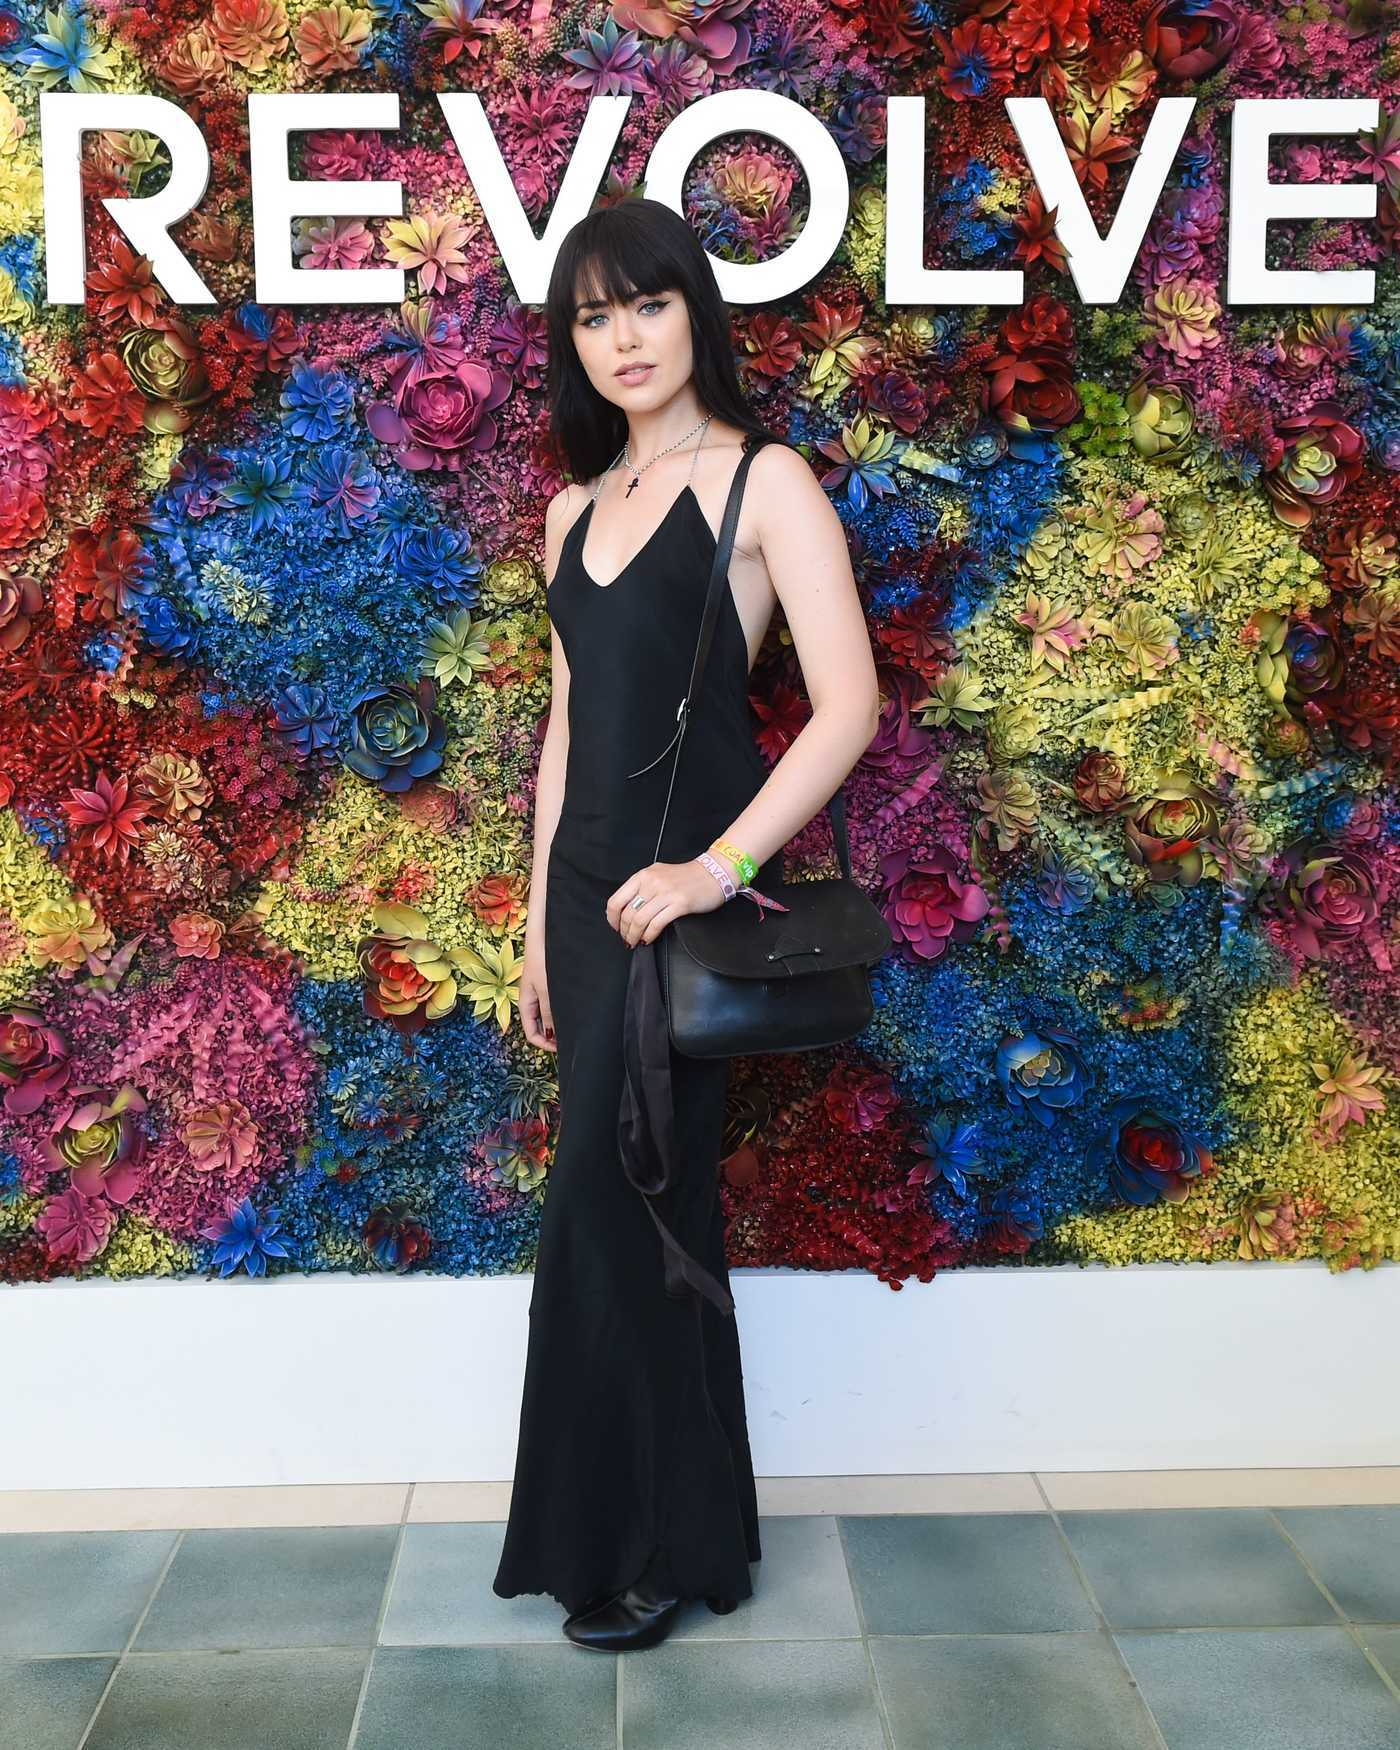 Kristina Bazan Attends the REVOLVE Desert House During the Coachella Valley Music and Arts Festival in Palm Springs 04/16/2017